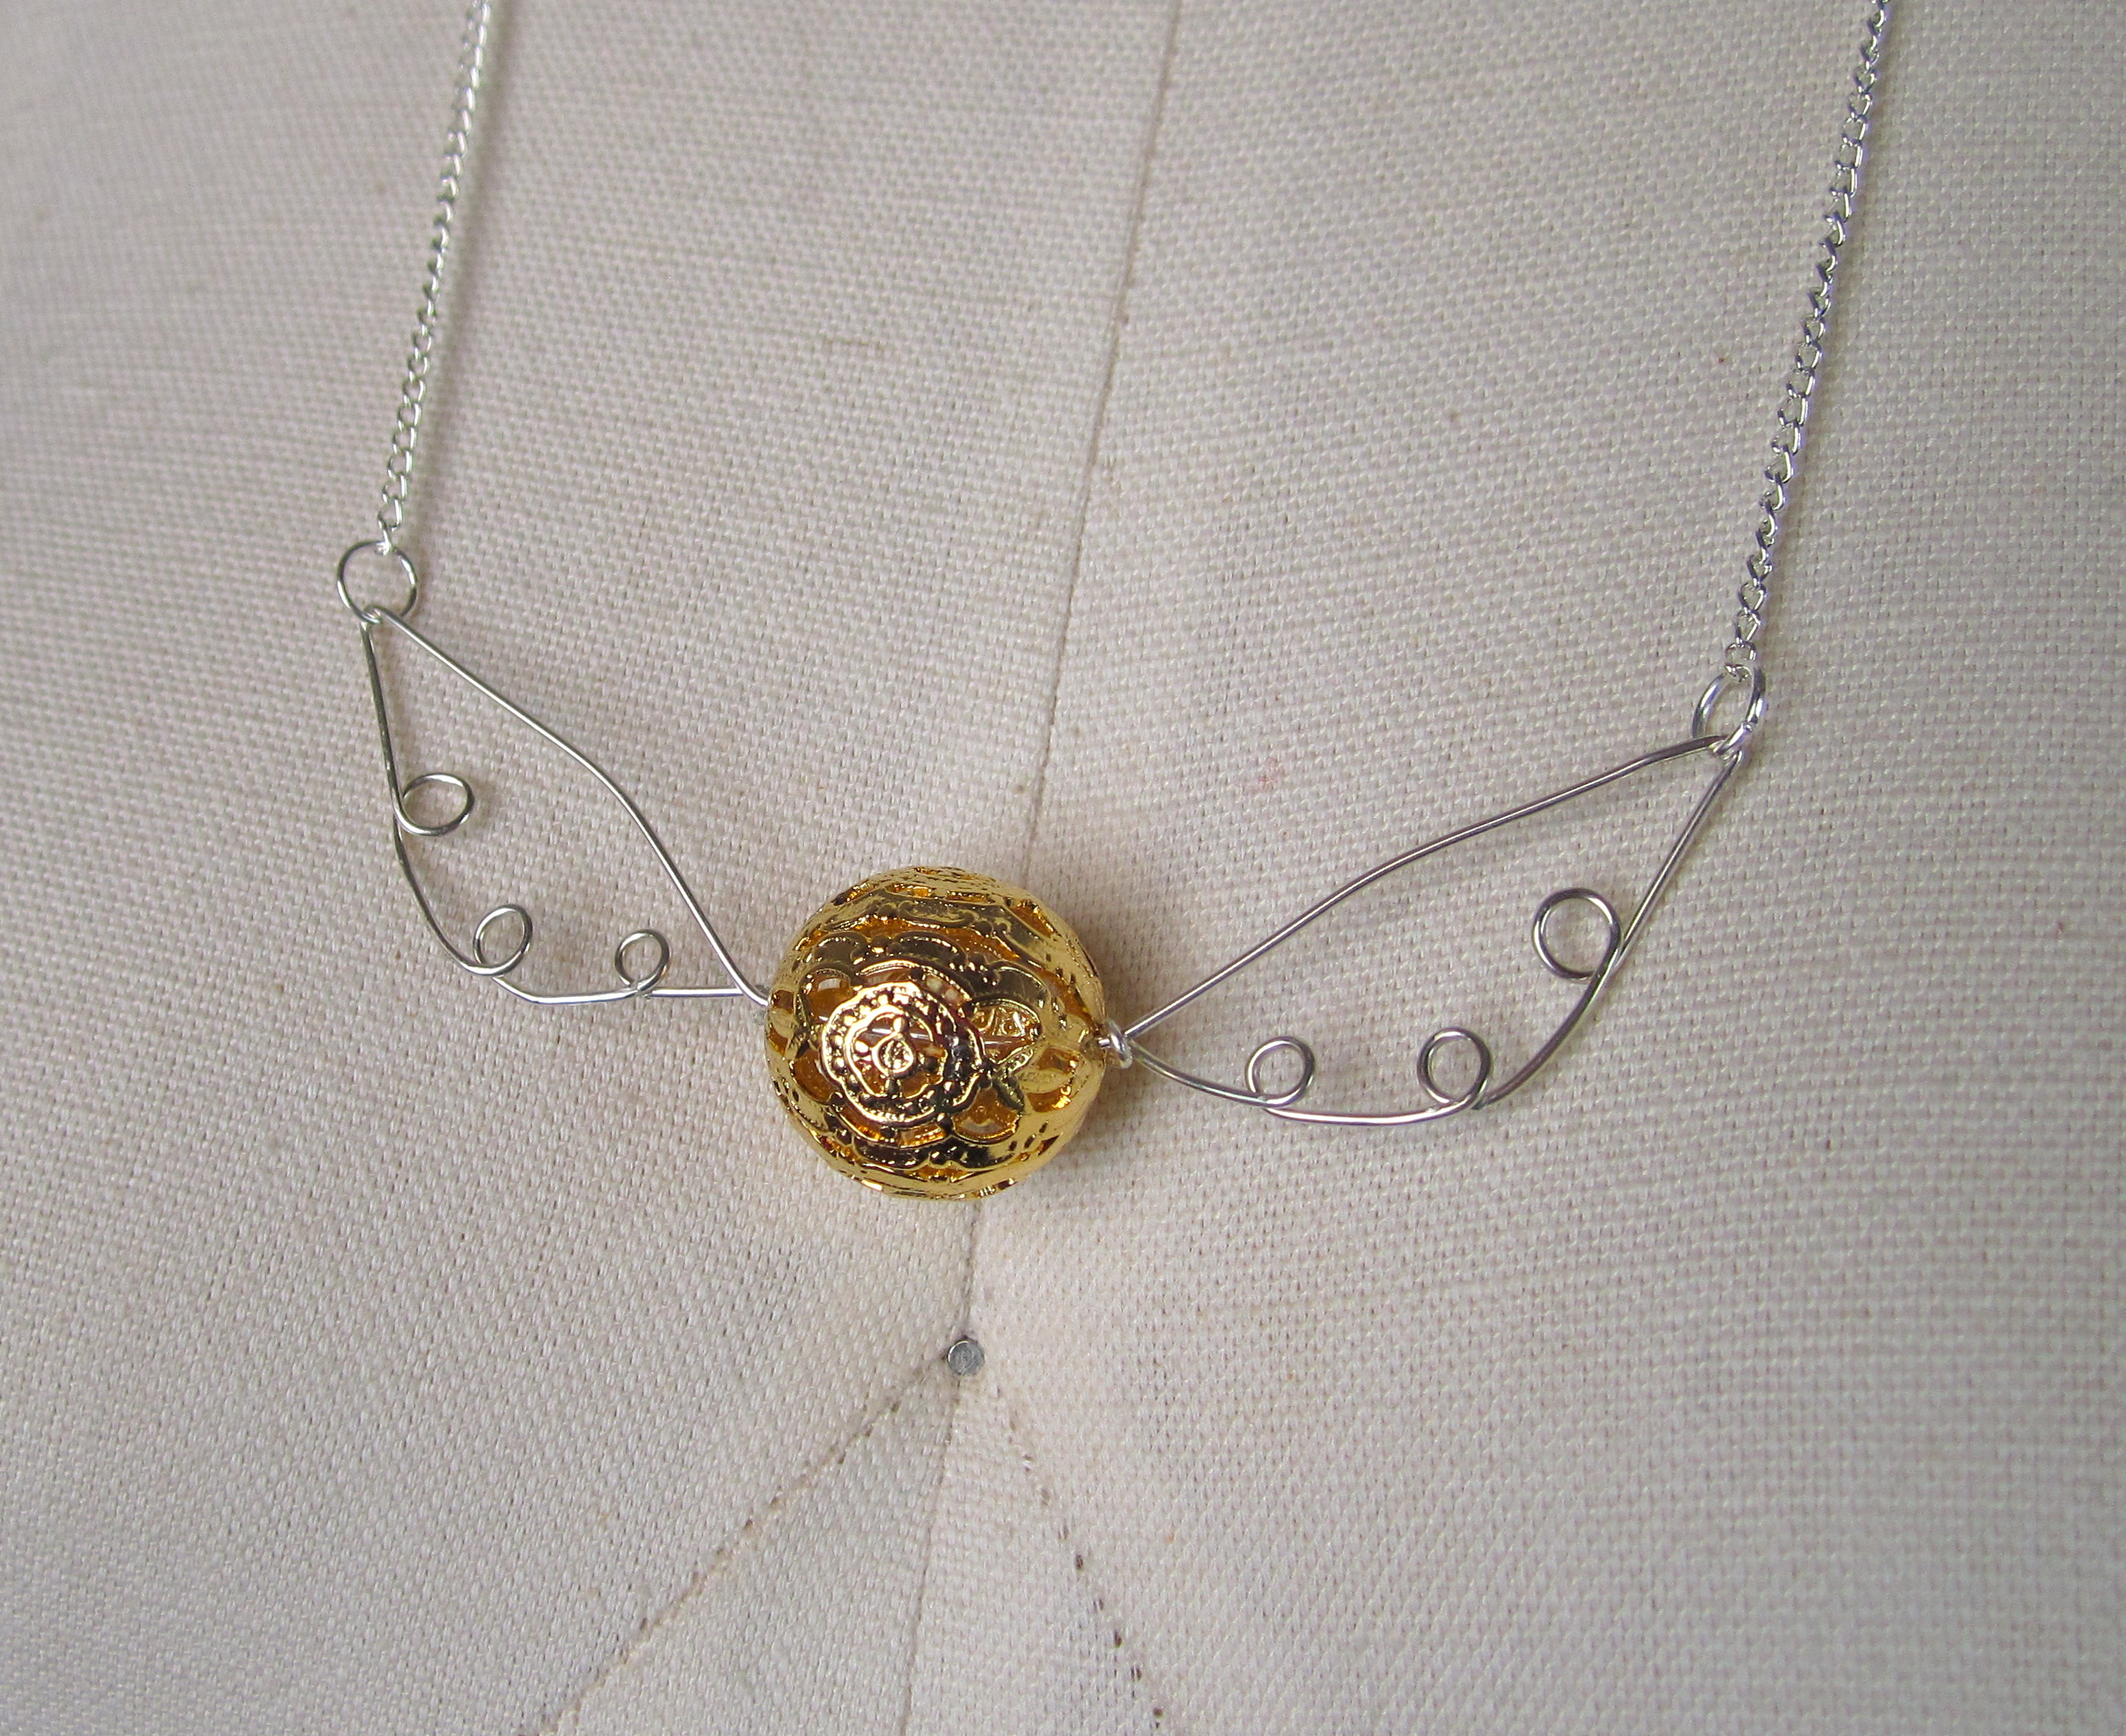 Make a golden snitch necklace!